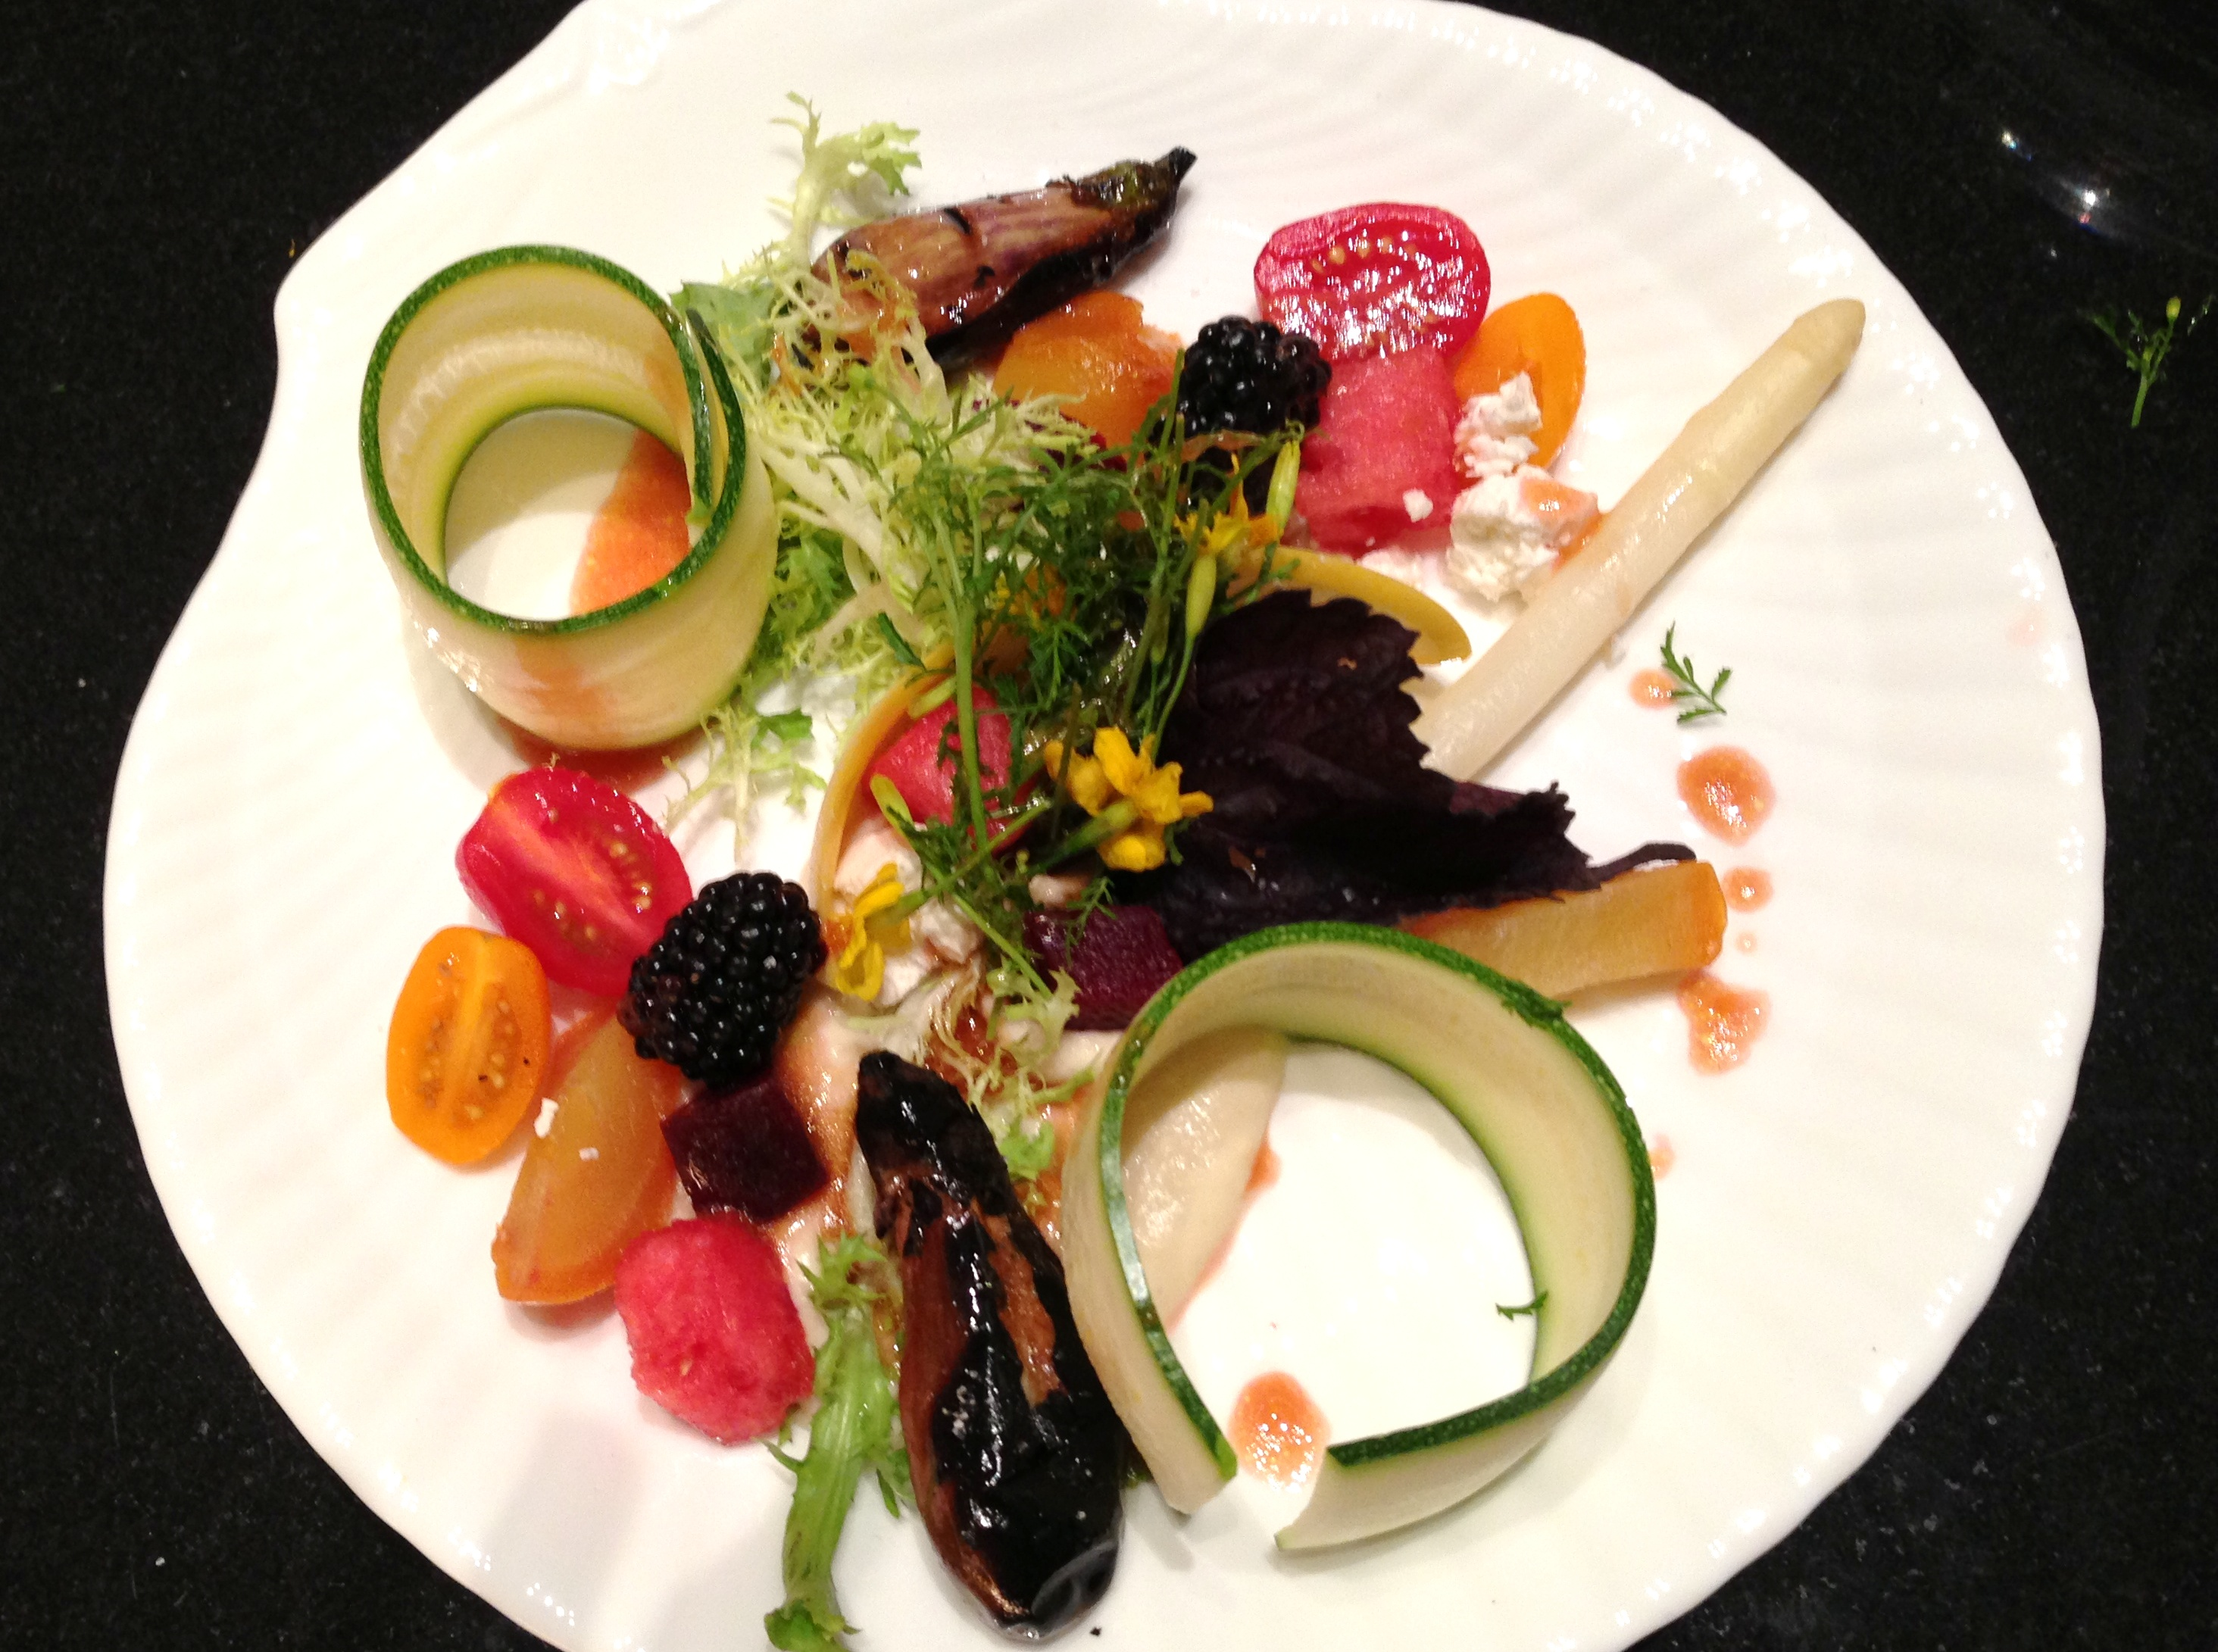 Vegetable and Fruit Composition